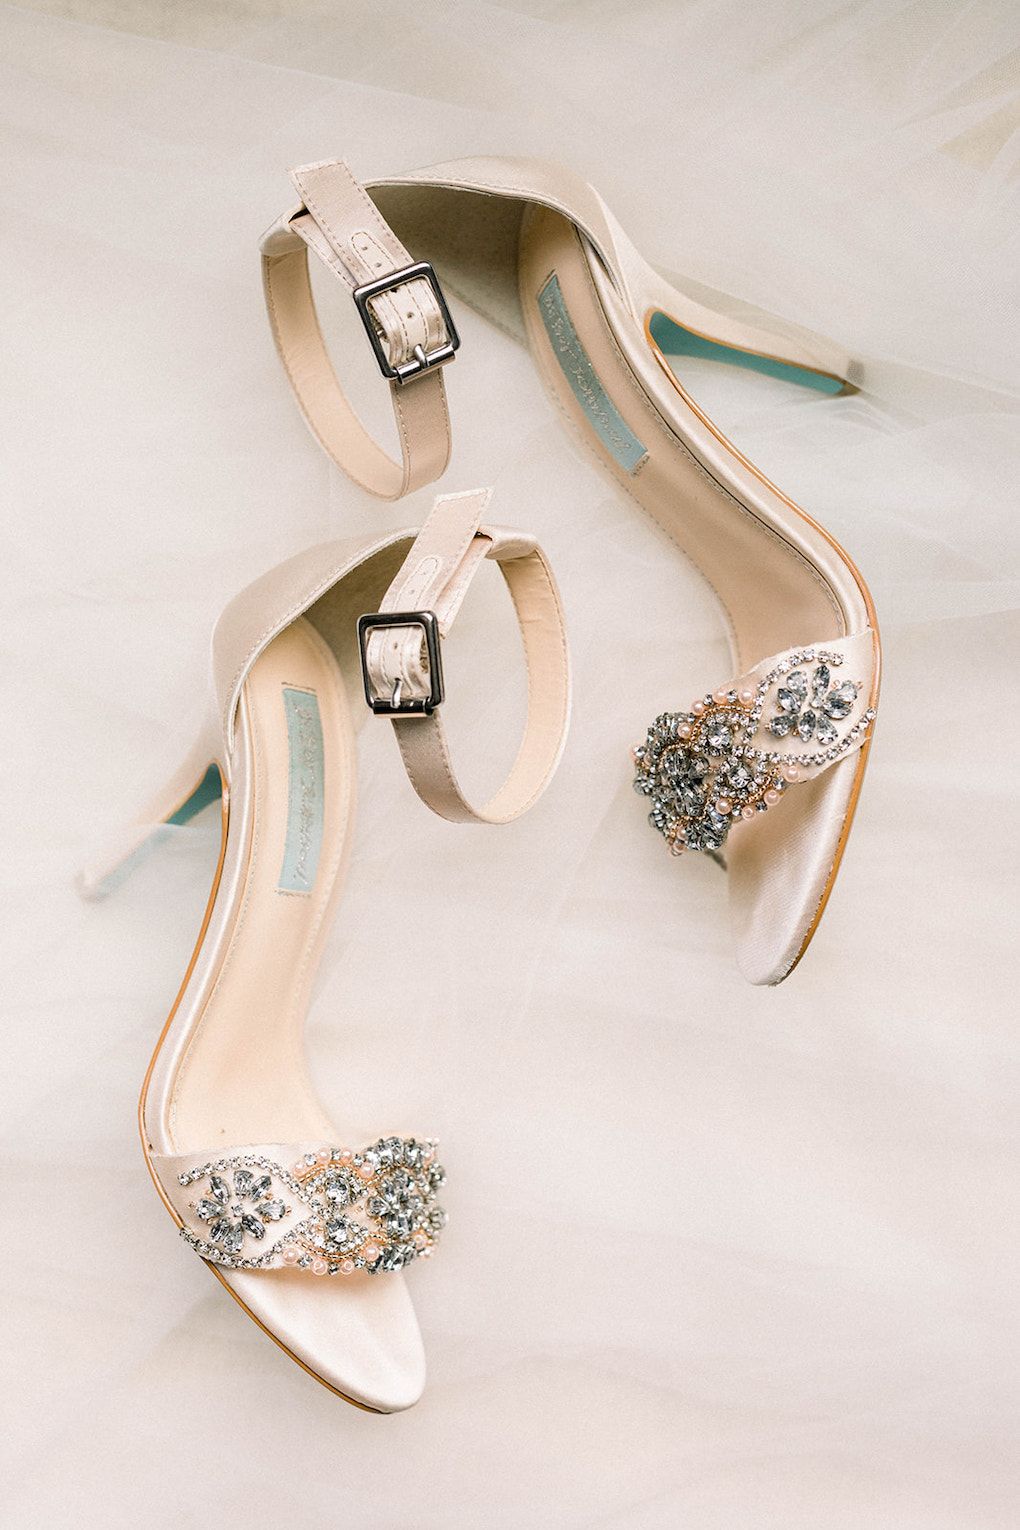 Wedding shoes: Pittsburgh Botanic Garden wedding planned by Exhale Events. See more wedding inspiration at exhale-events.com!